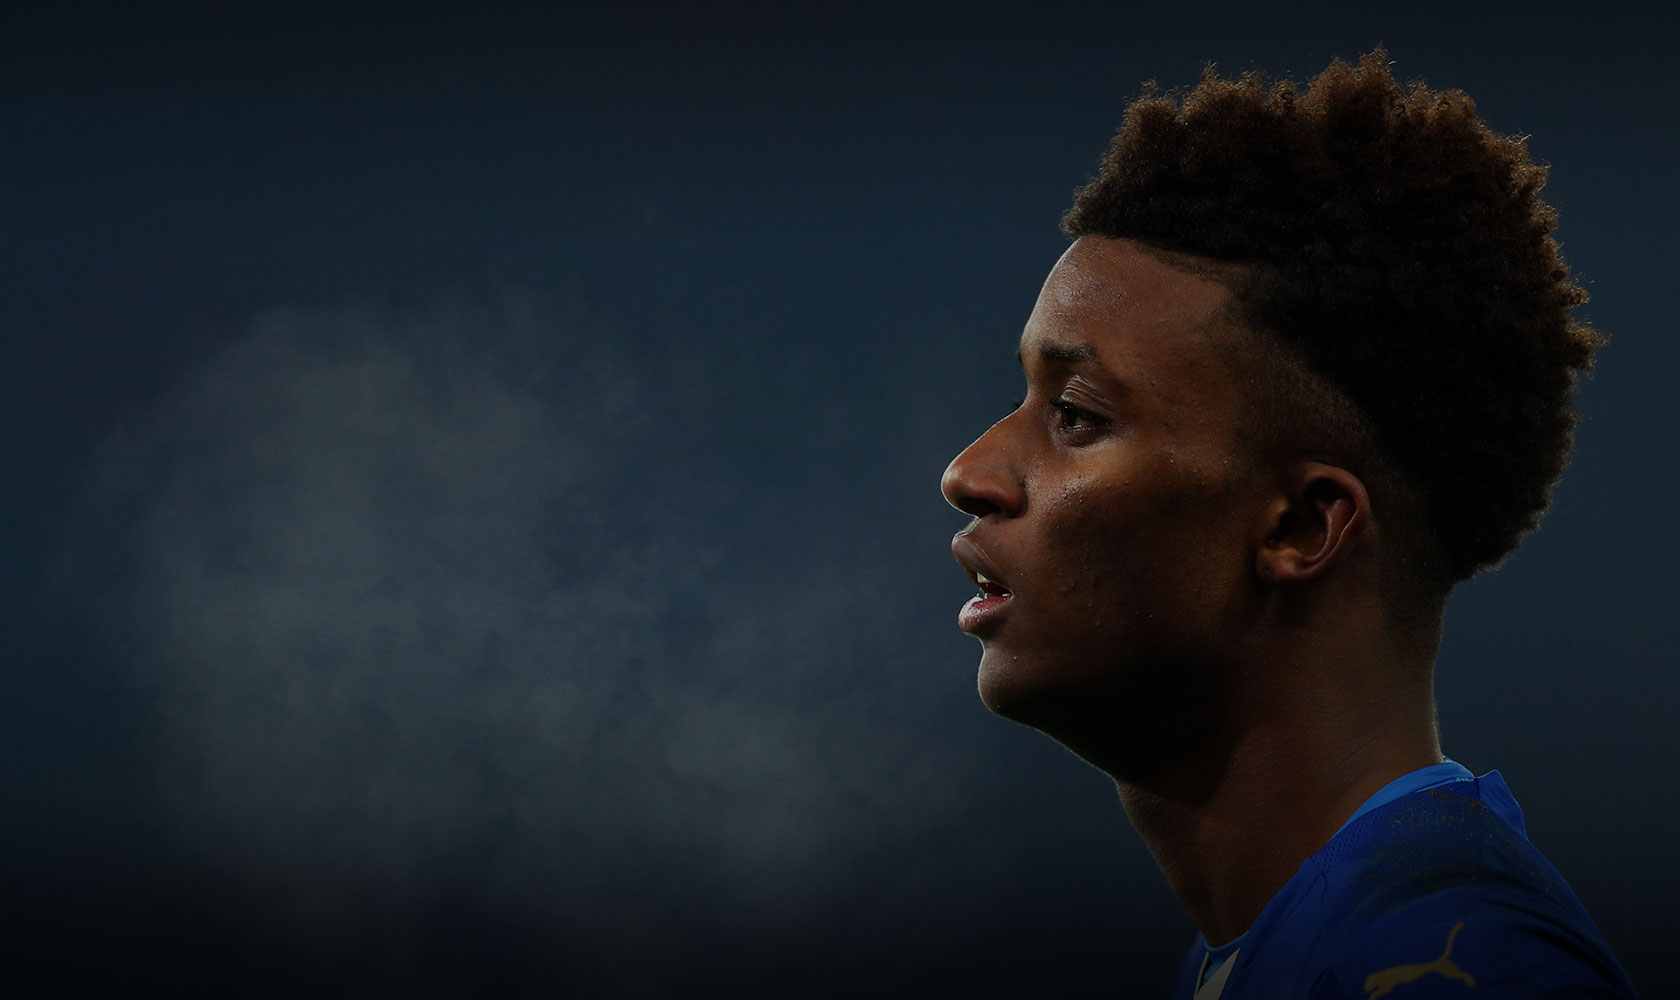 Demarai Gray of Leicester City during the Emirates FA Cup match between Leicester City and Tottenham Hotspur at King Power Stadium on January 20, 2016 in Leicester, England. Photo: Catherine Ivill - AMA / Contributor